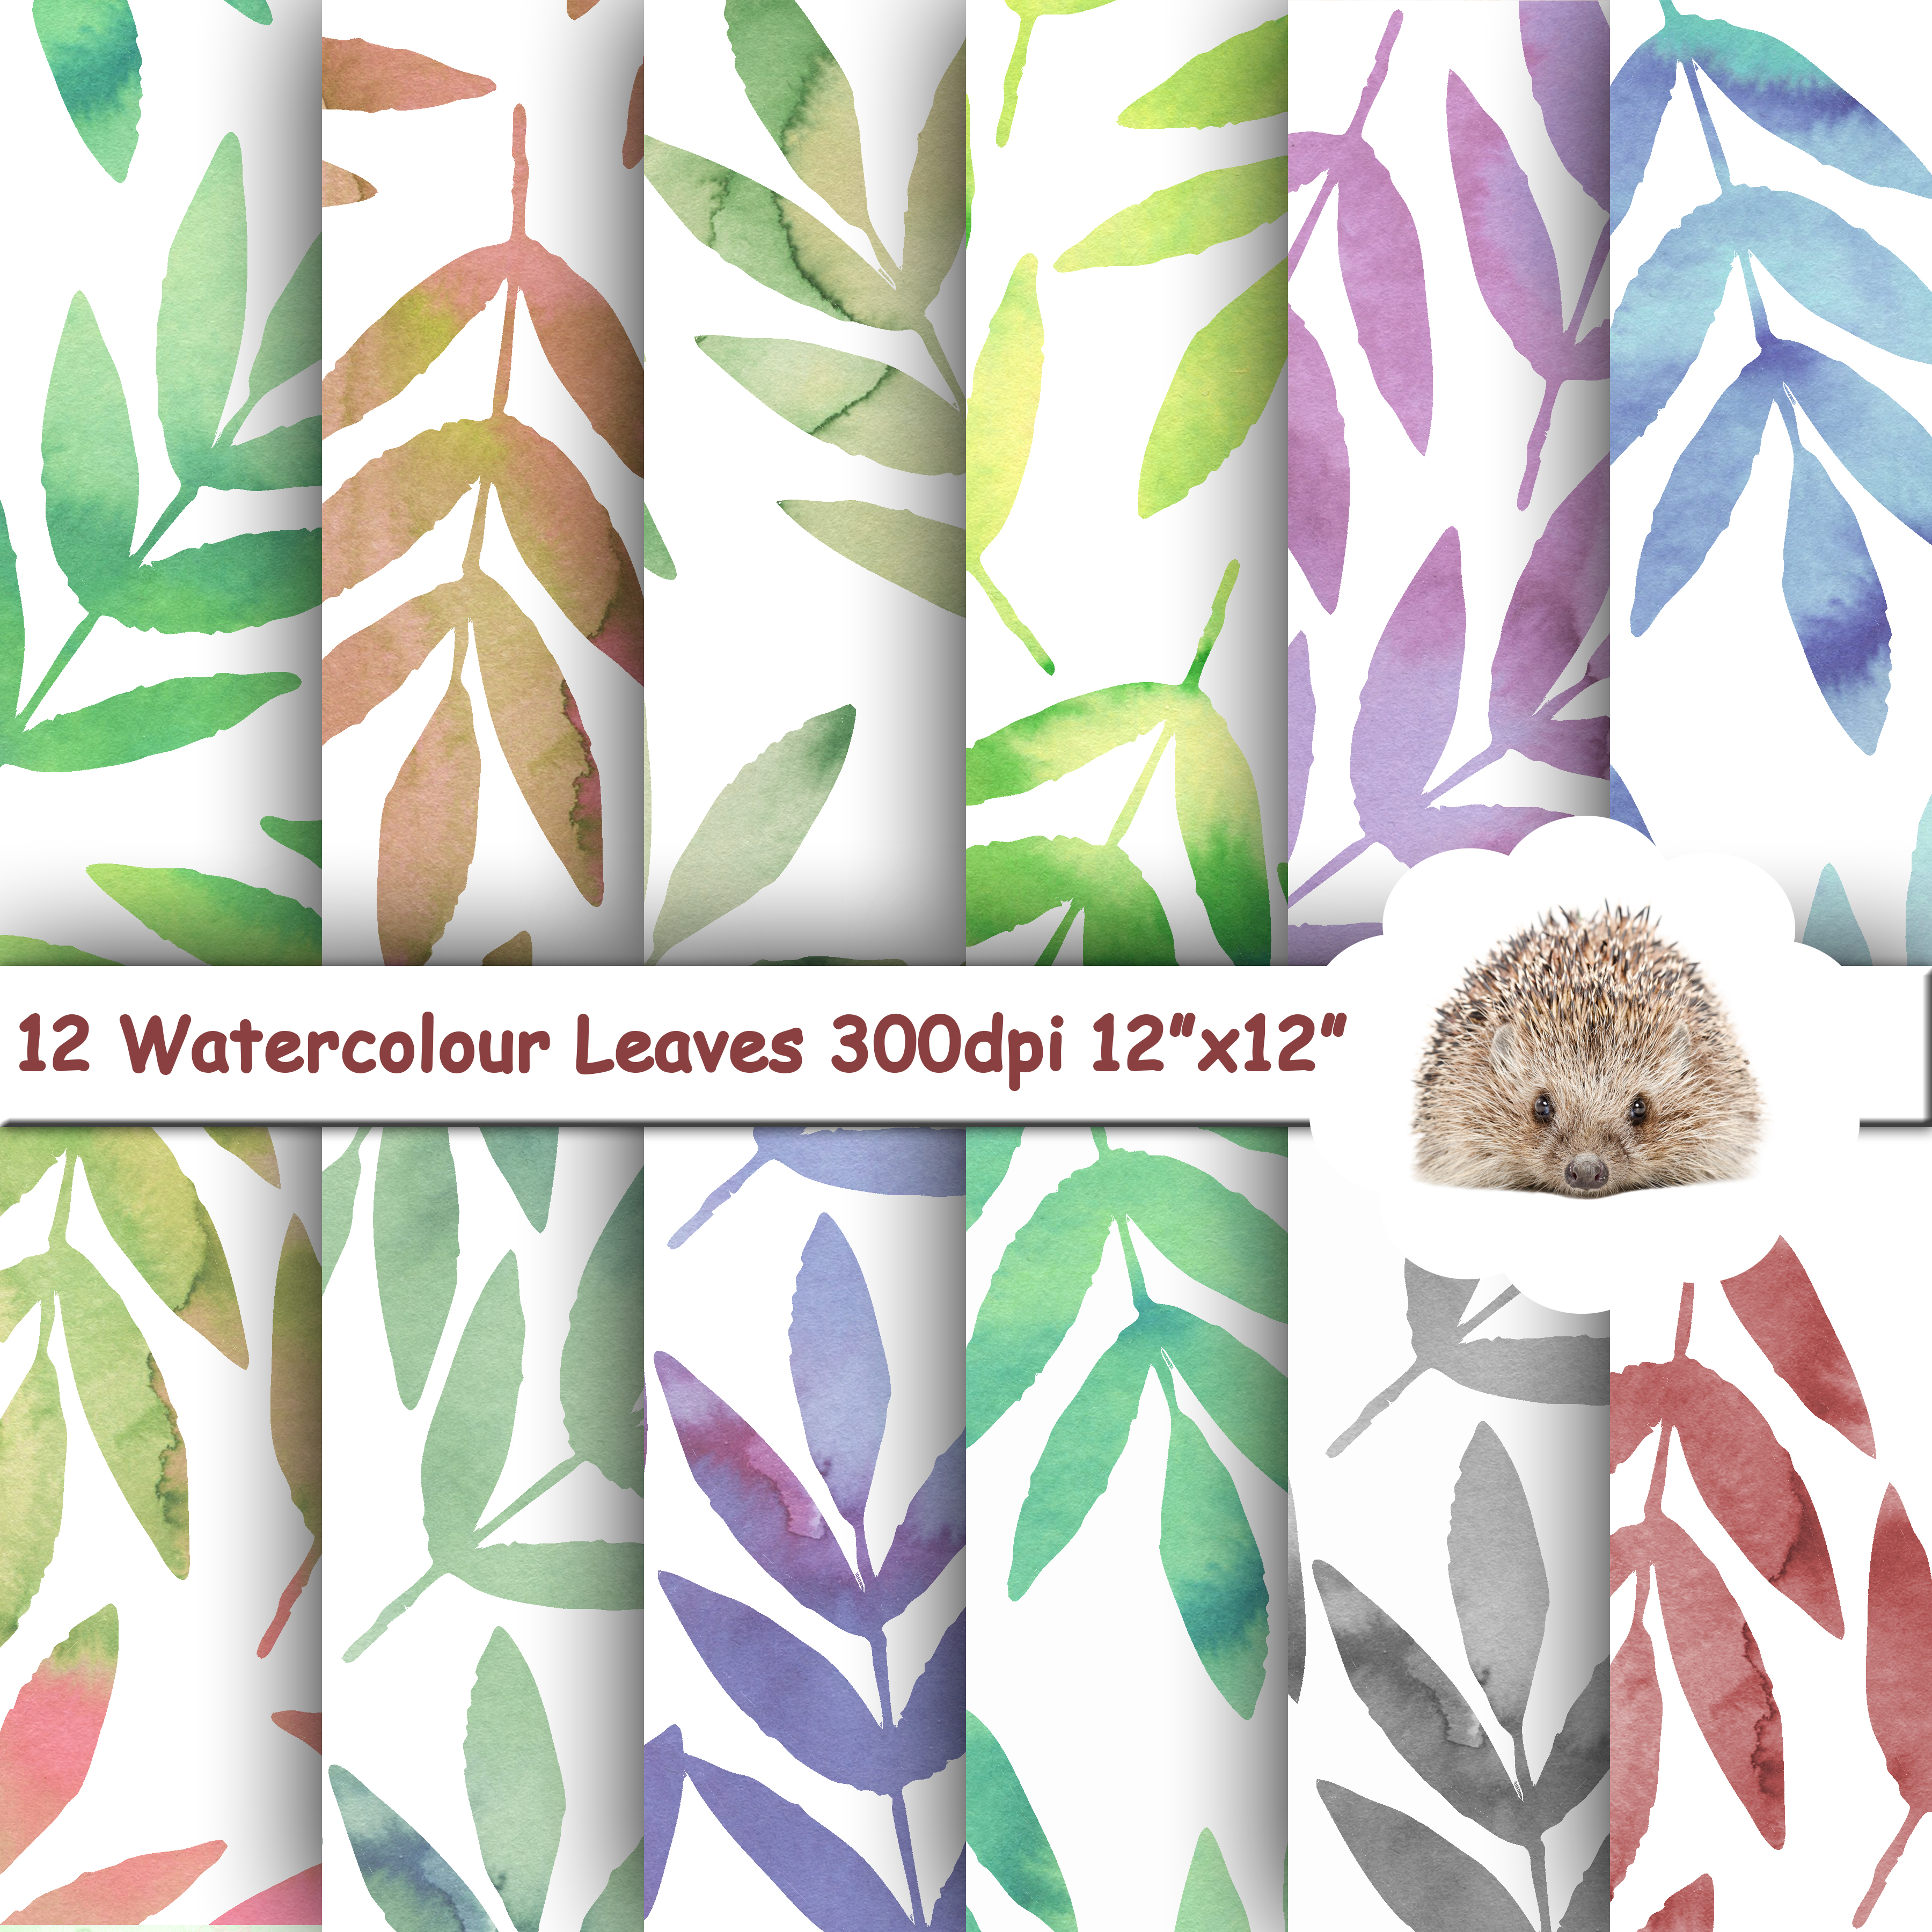 12 Watercolour Leafy Papers / Backgrounds / Patterns example image 1